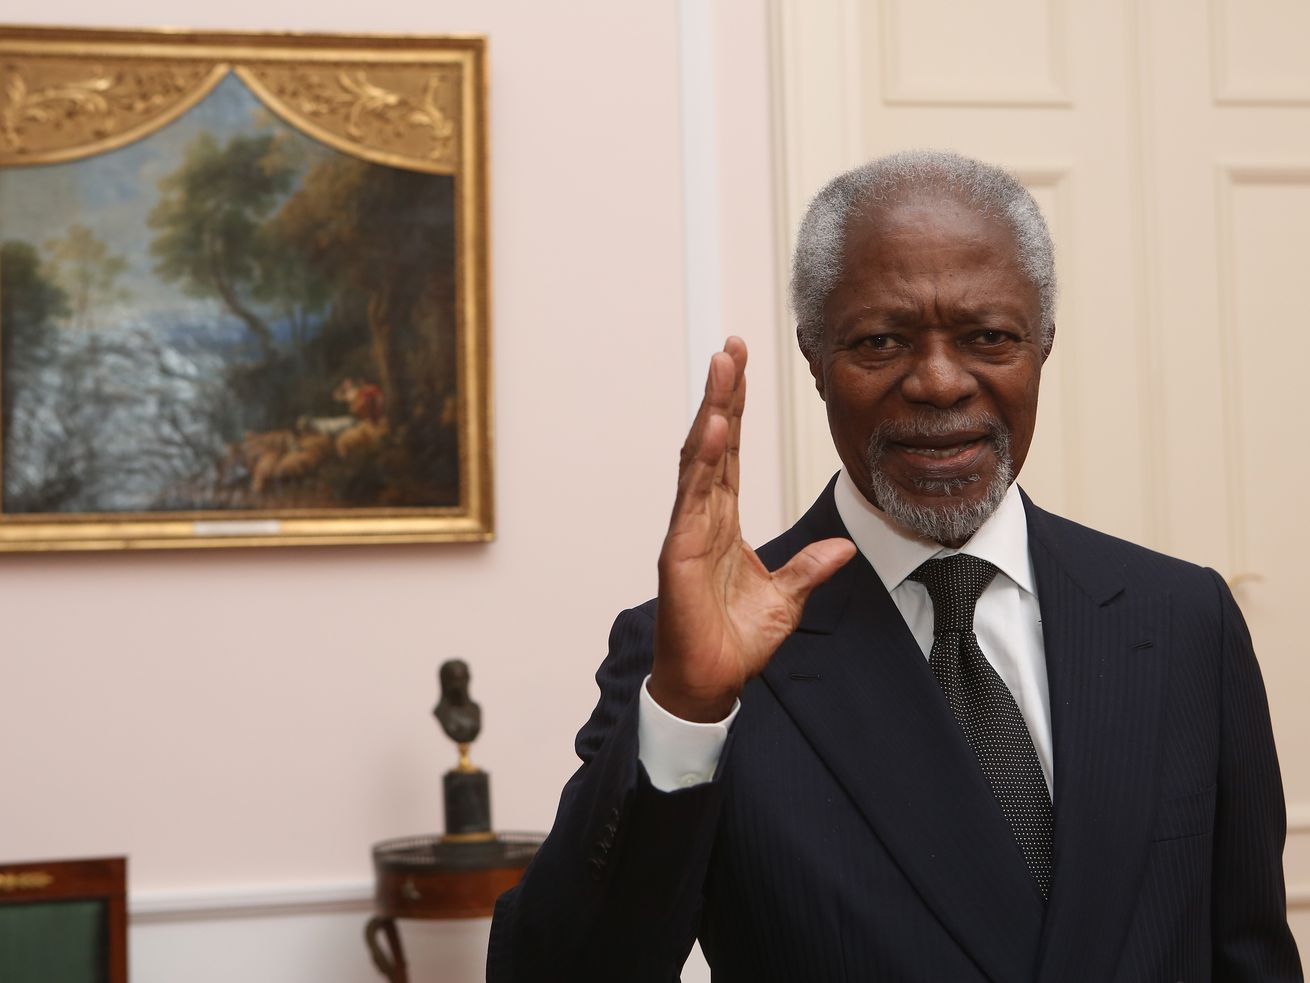 Former secretary general of the United Nations Kofi Annan attends a dinner in honor of Former German President Horst Koehler during the latter's 75th birthday at Bellevue Palace on March 8, 2018 in Berlin, Germany.